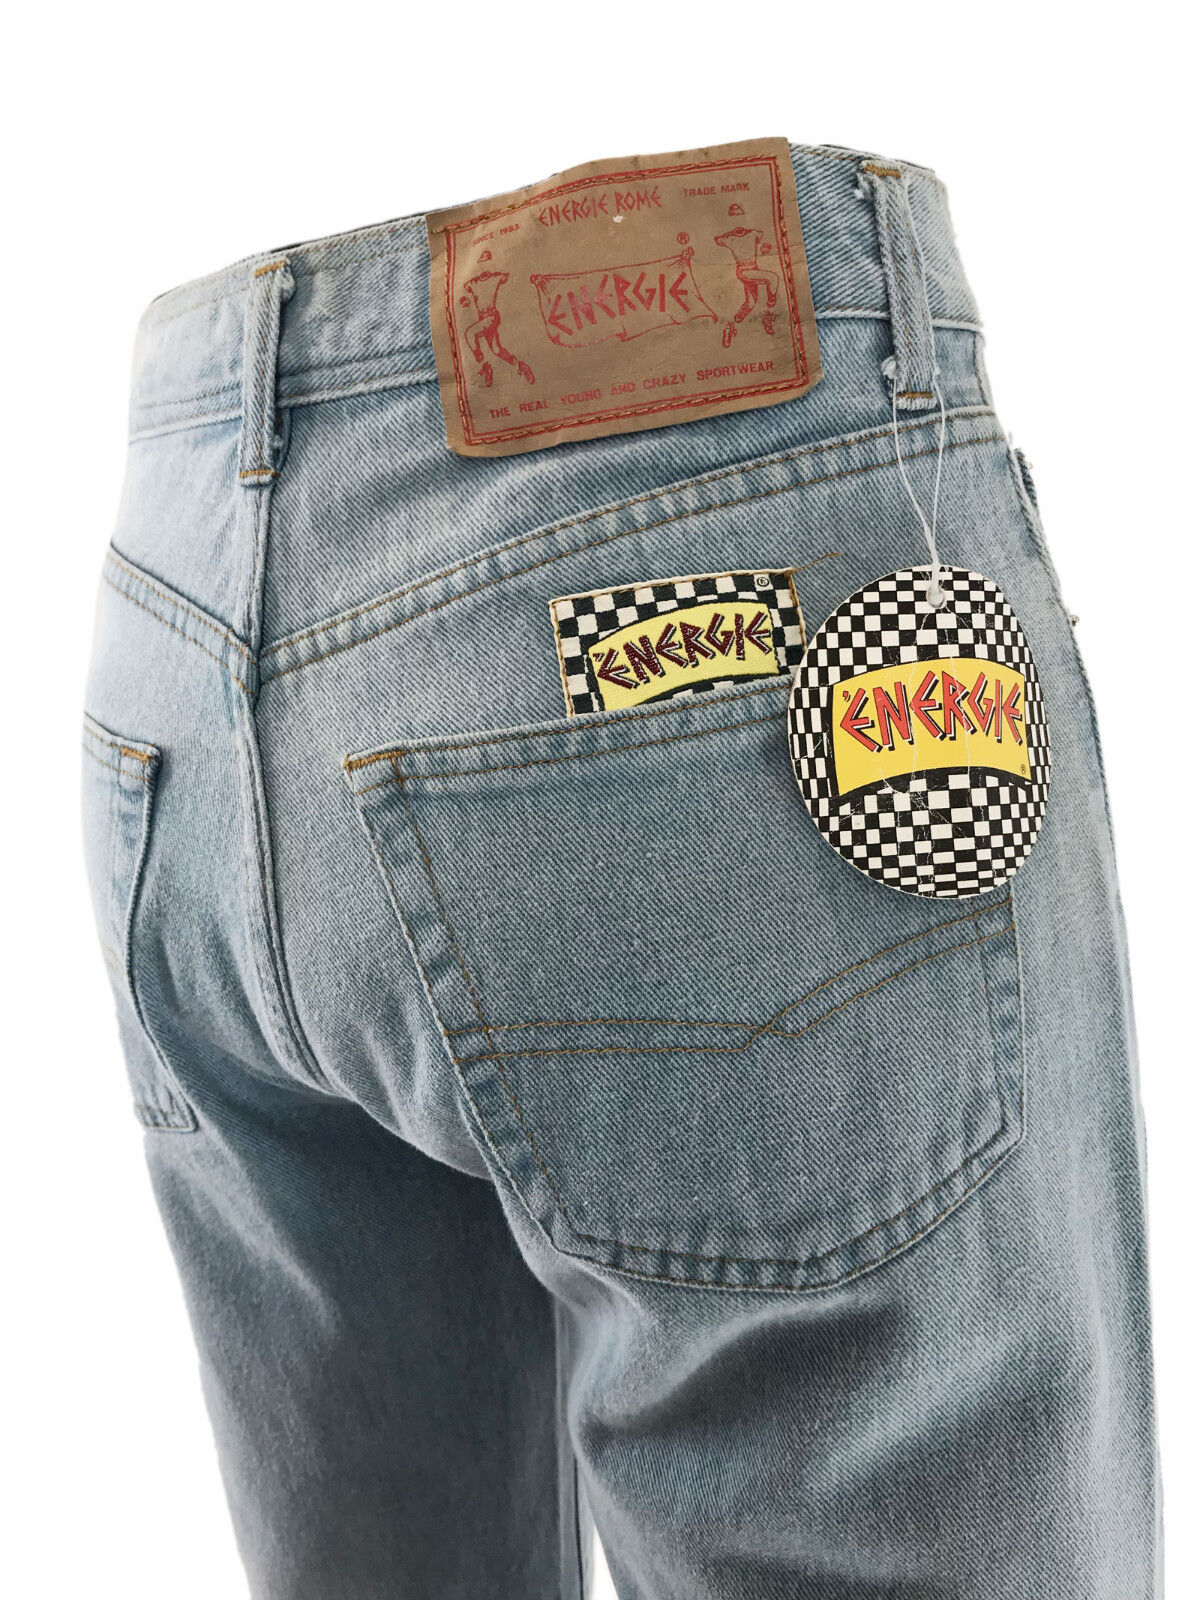 Energie Karpacho Vintage Light Jeans (Late Eighties)